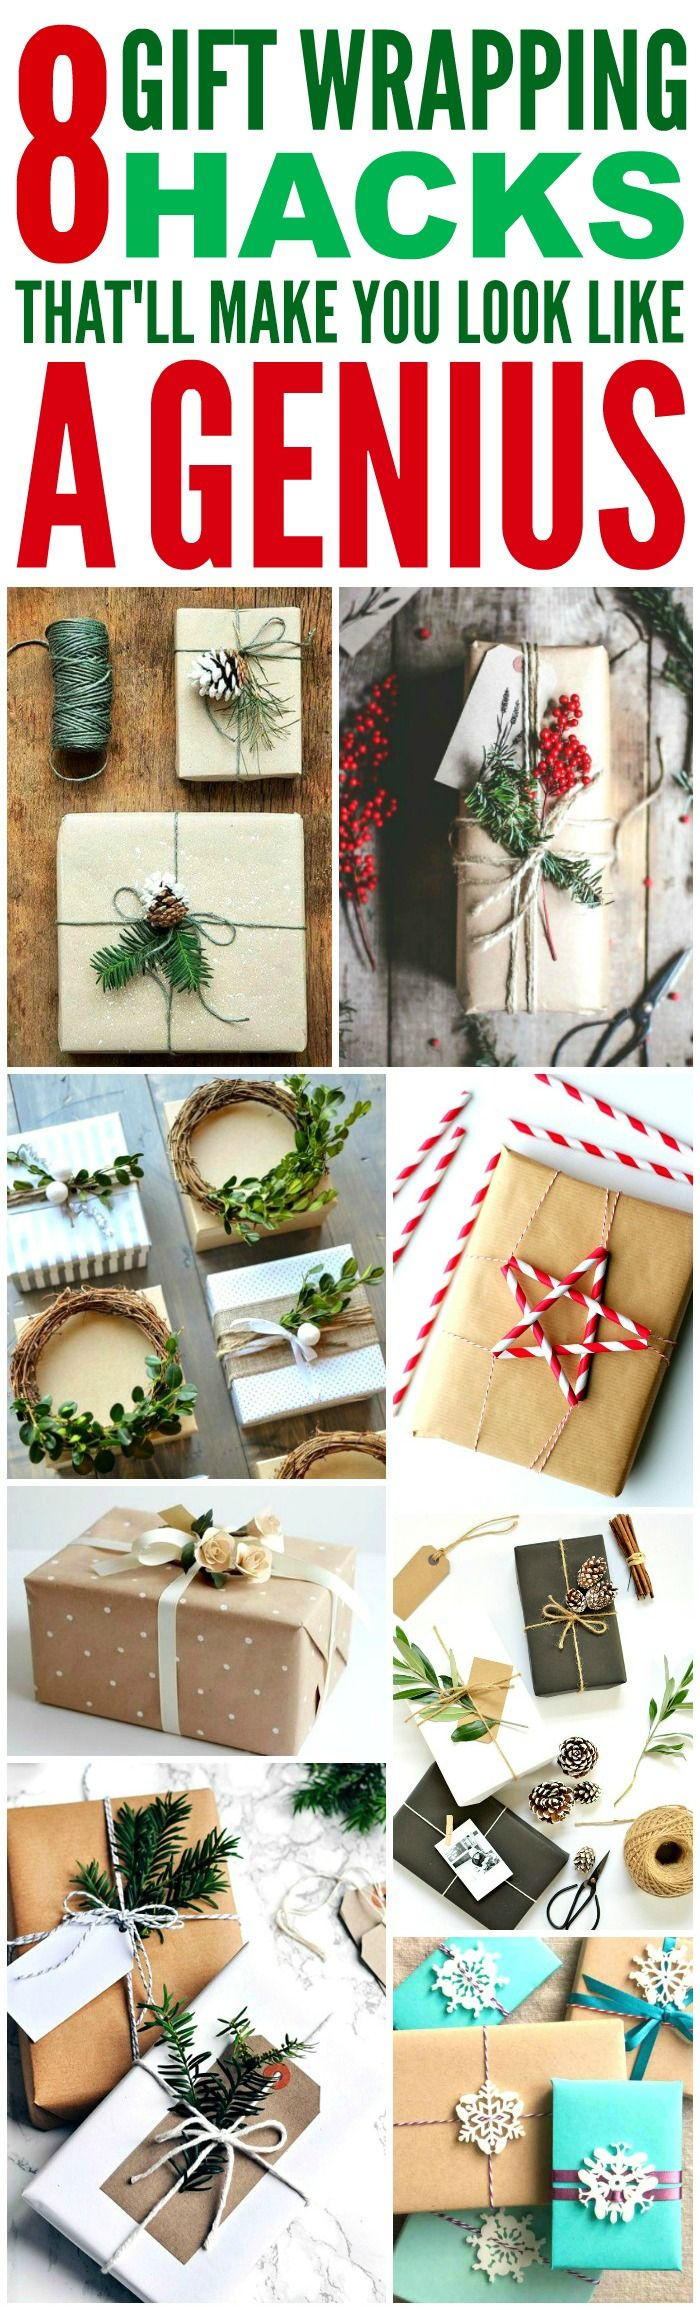 8 Super Creative And Brilliant Ways To Wrap Christmas Presents